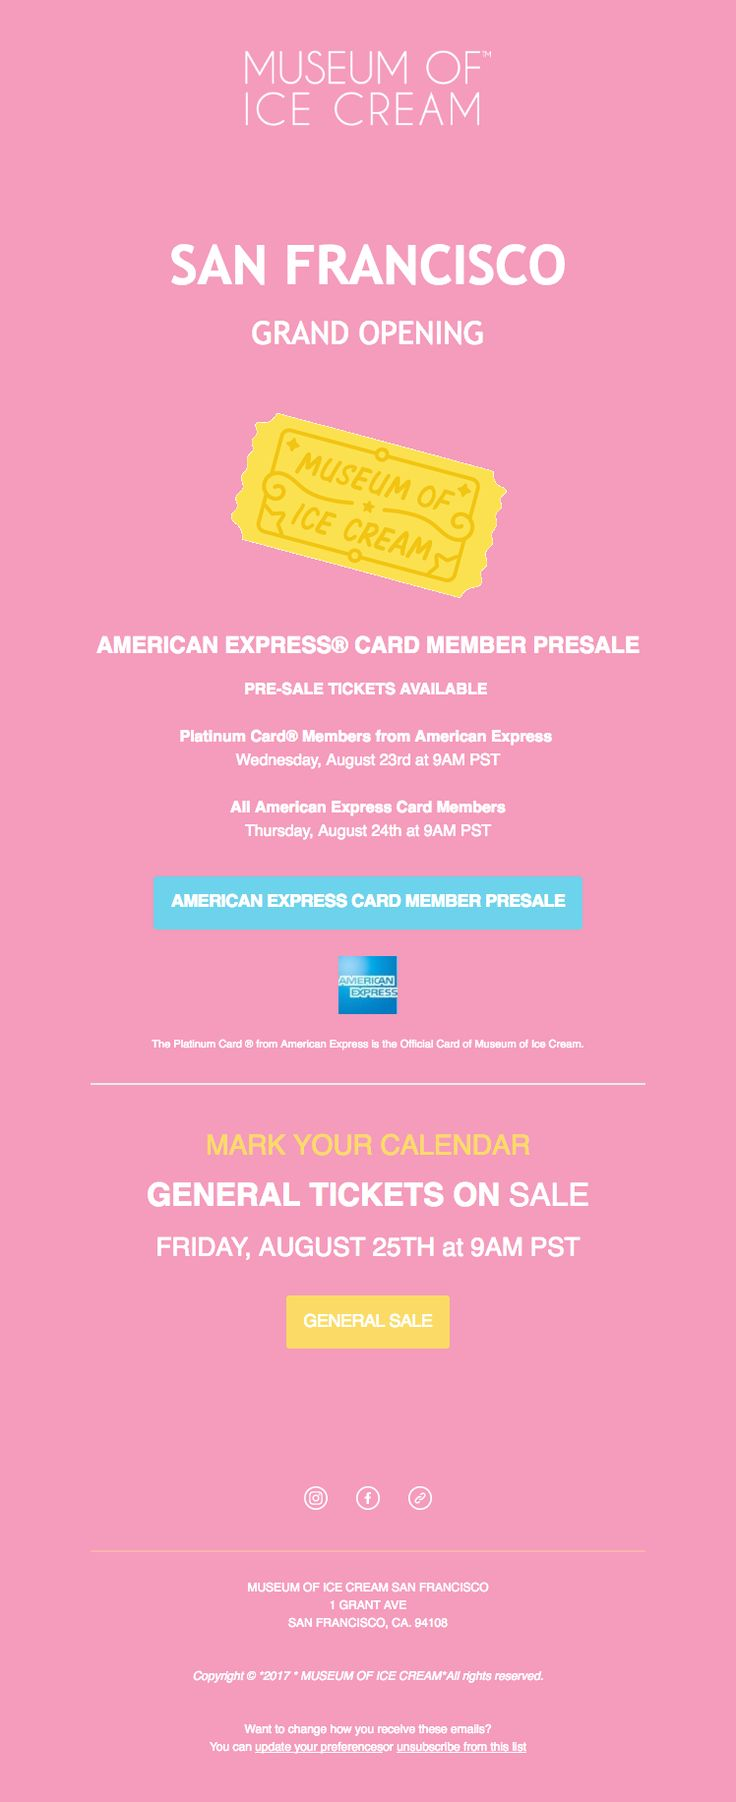 Beautiful email design from the Museum of Ice Cream. See the code here - https://www.kuratedemail.co/email-museum-of-ice-cream